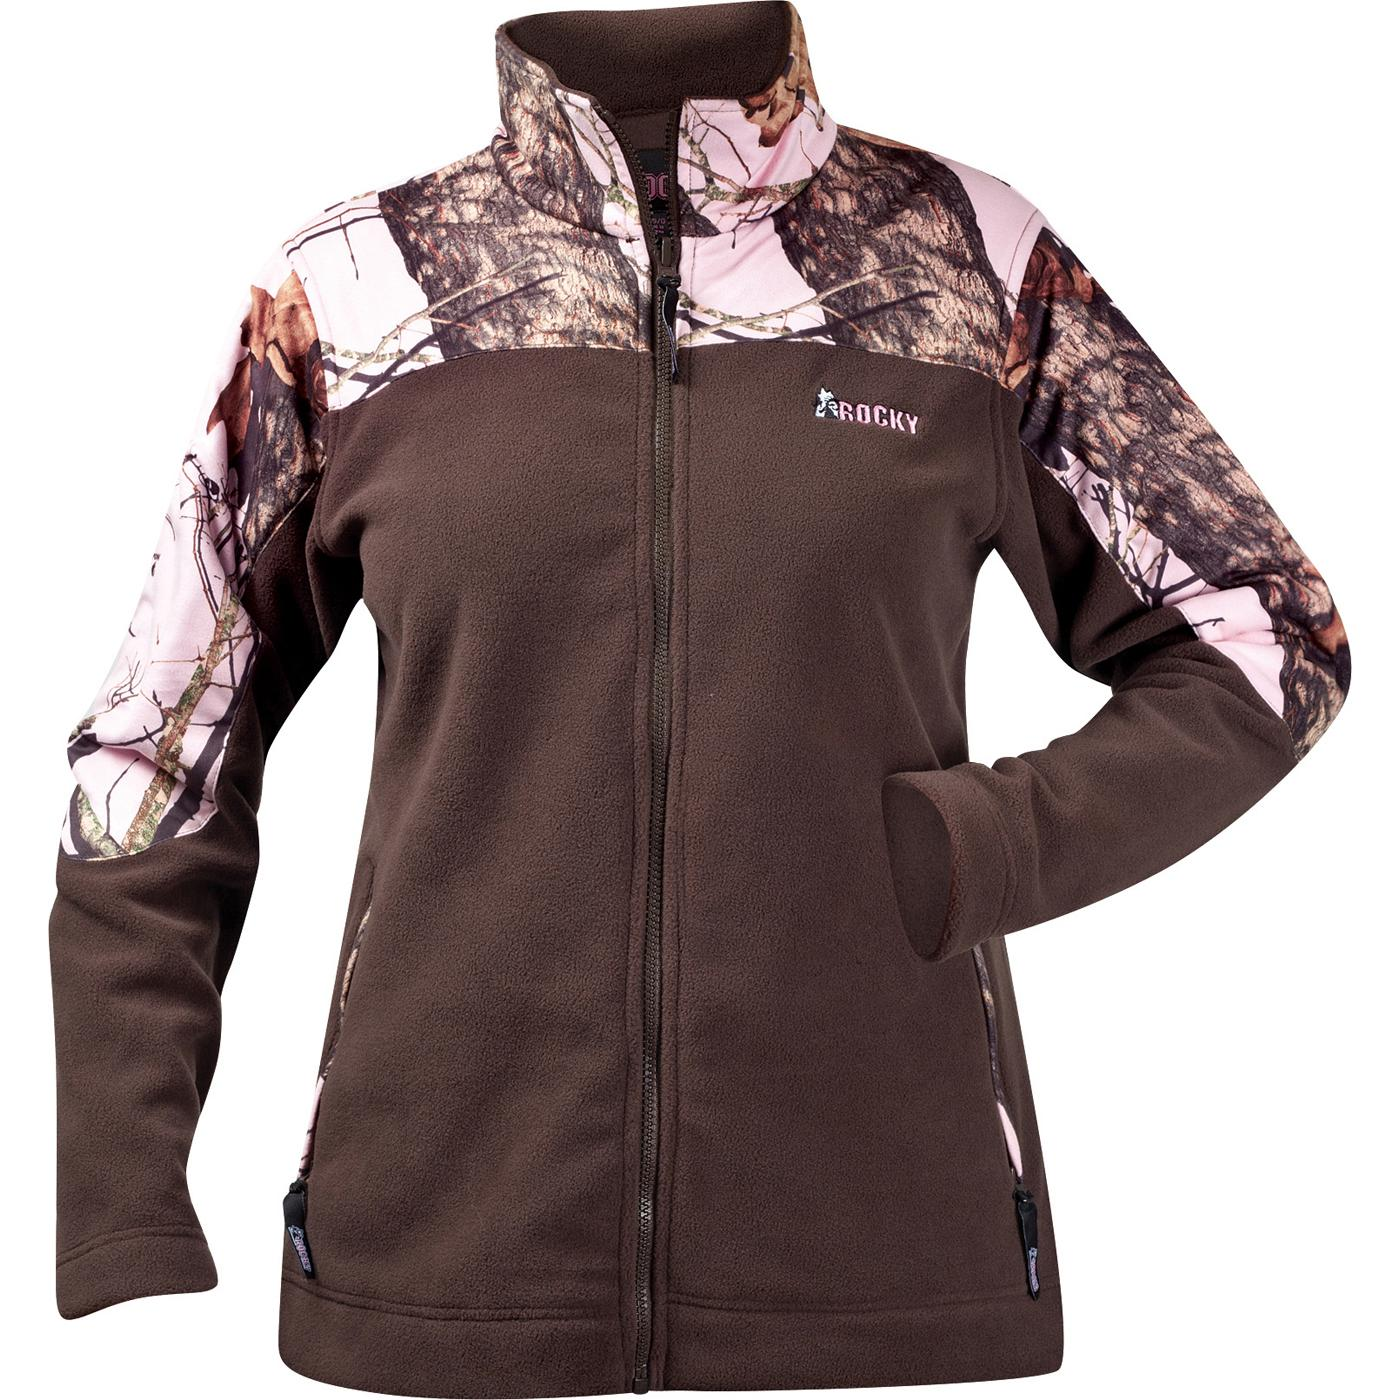 Soft Shell Jackets paydayloansboise.gq offers blank and custom embroidered Wholesale Soft Shell Jackets at wholesale pricing. Click on the Wholesale Soft Shell Jackets below to view our Wholesale Jackets pricing and colors for each style.